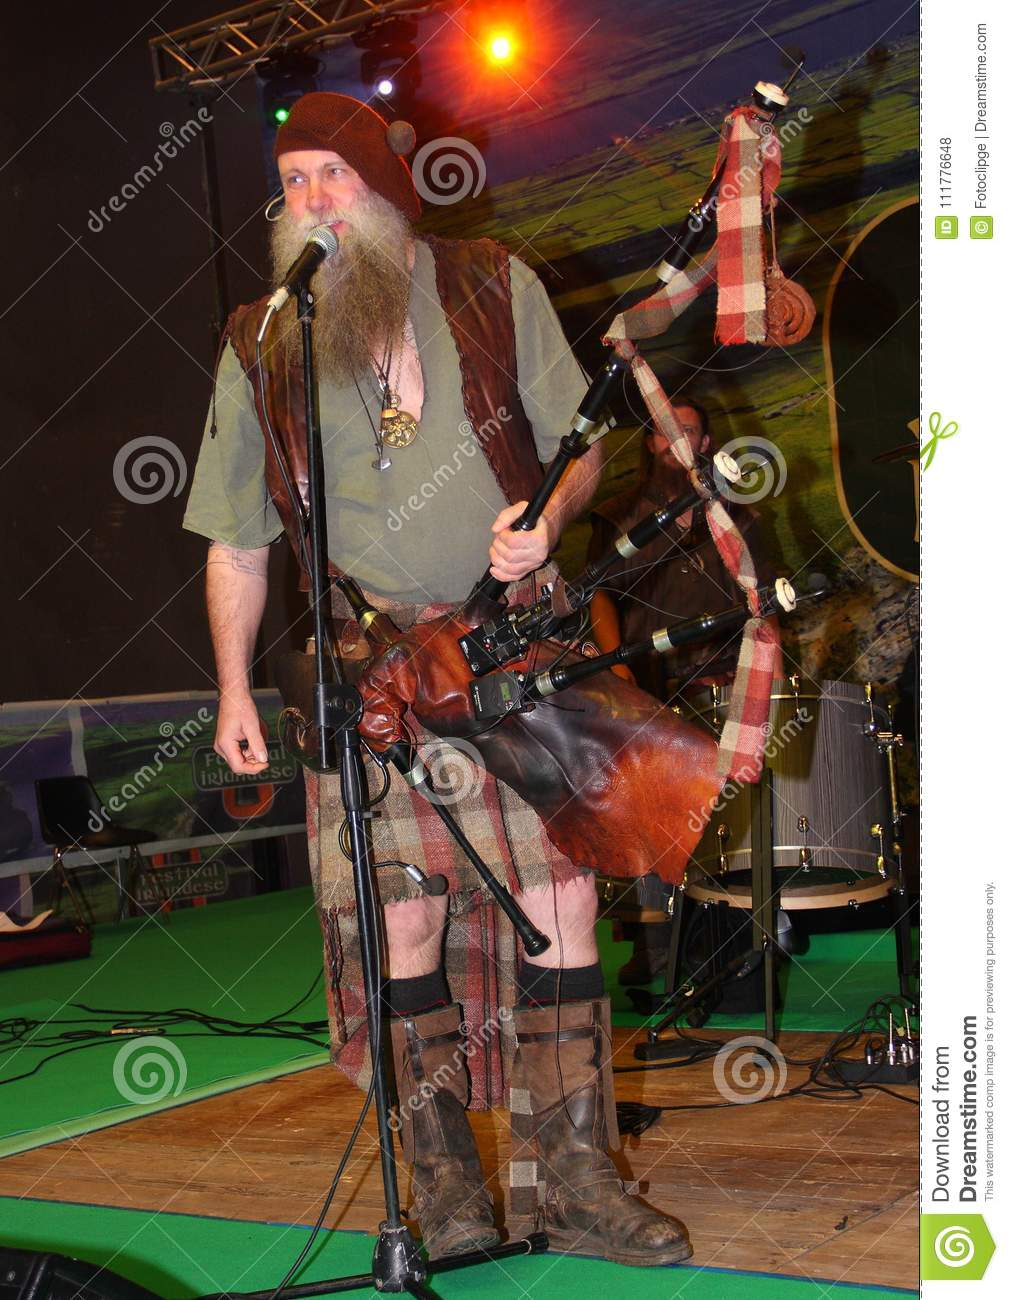 Bagpiper from the Saor Patrol group